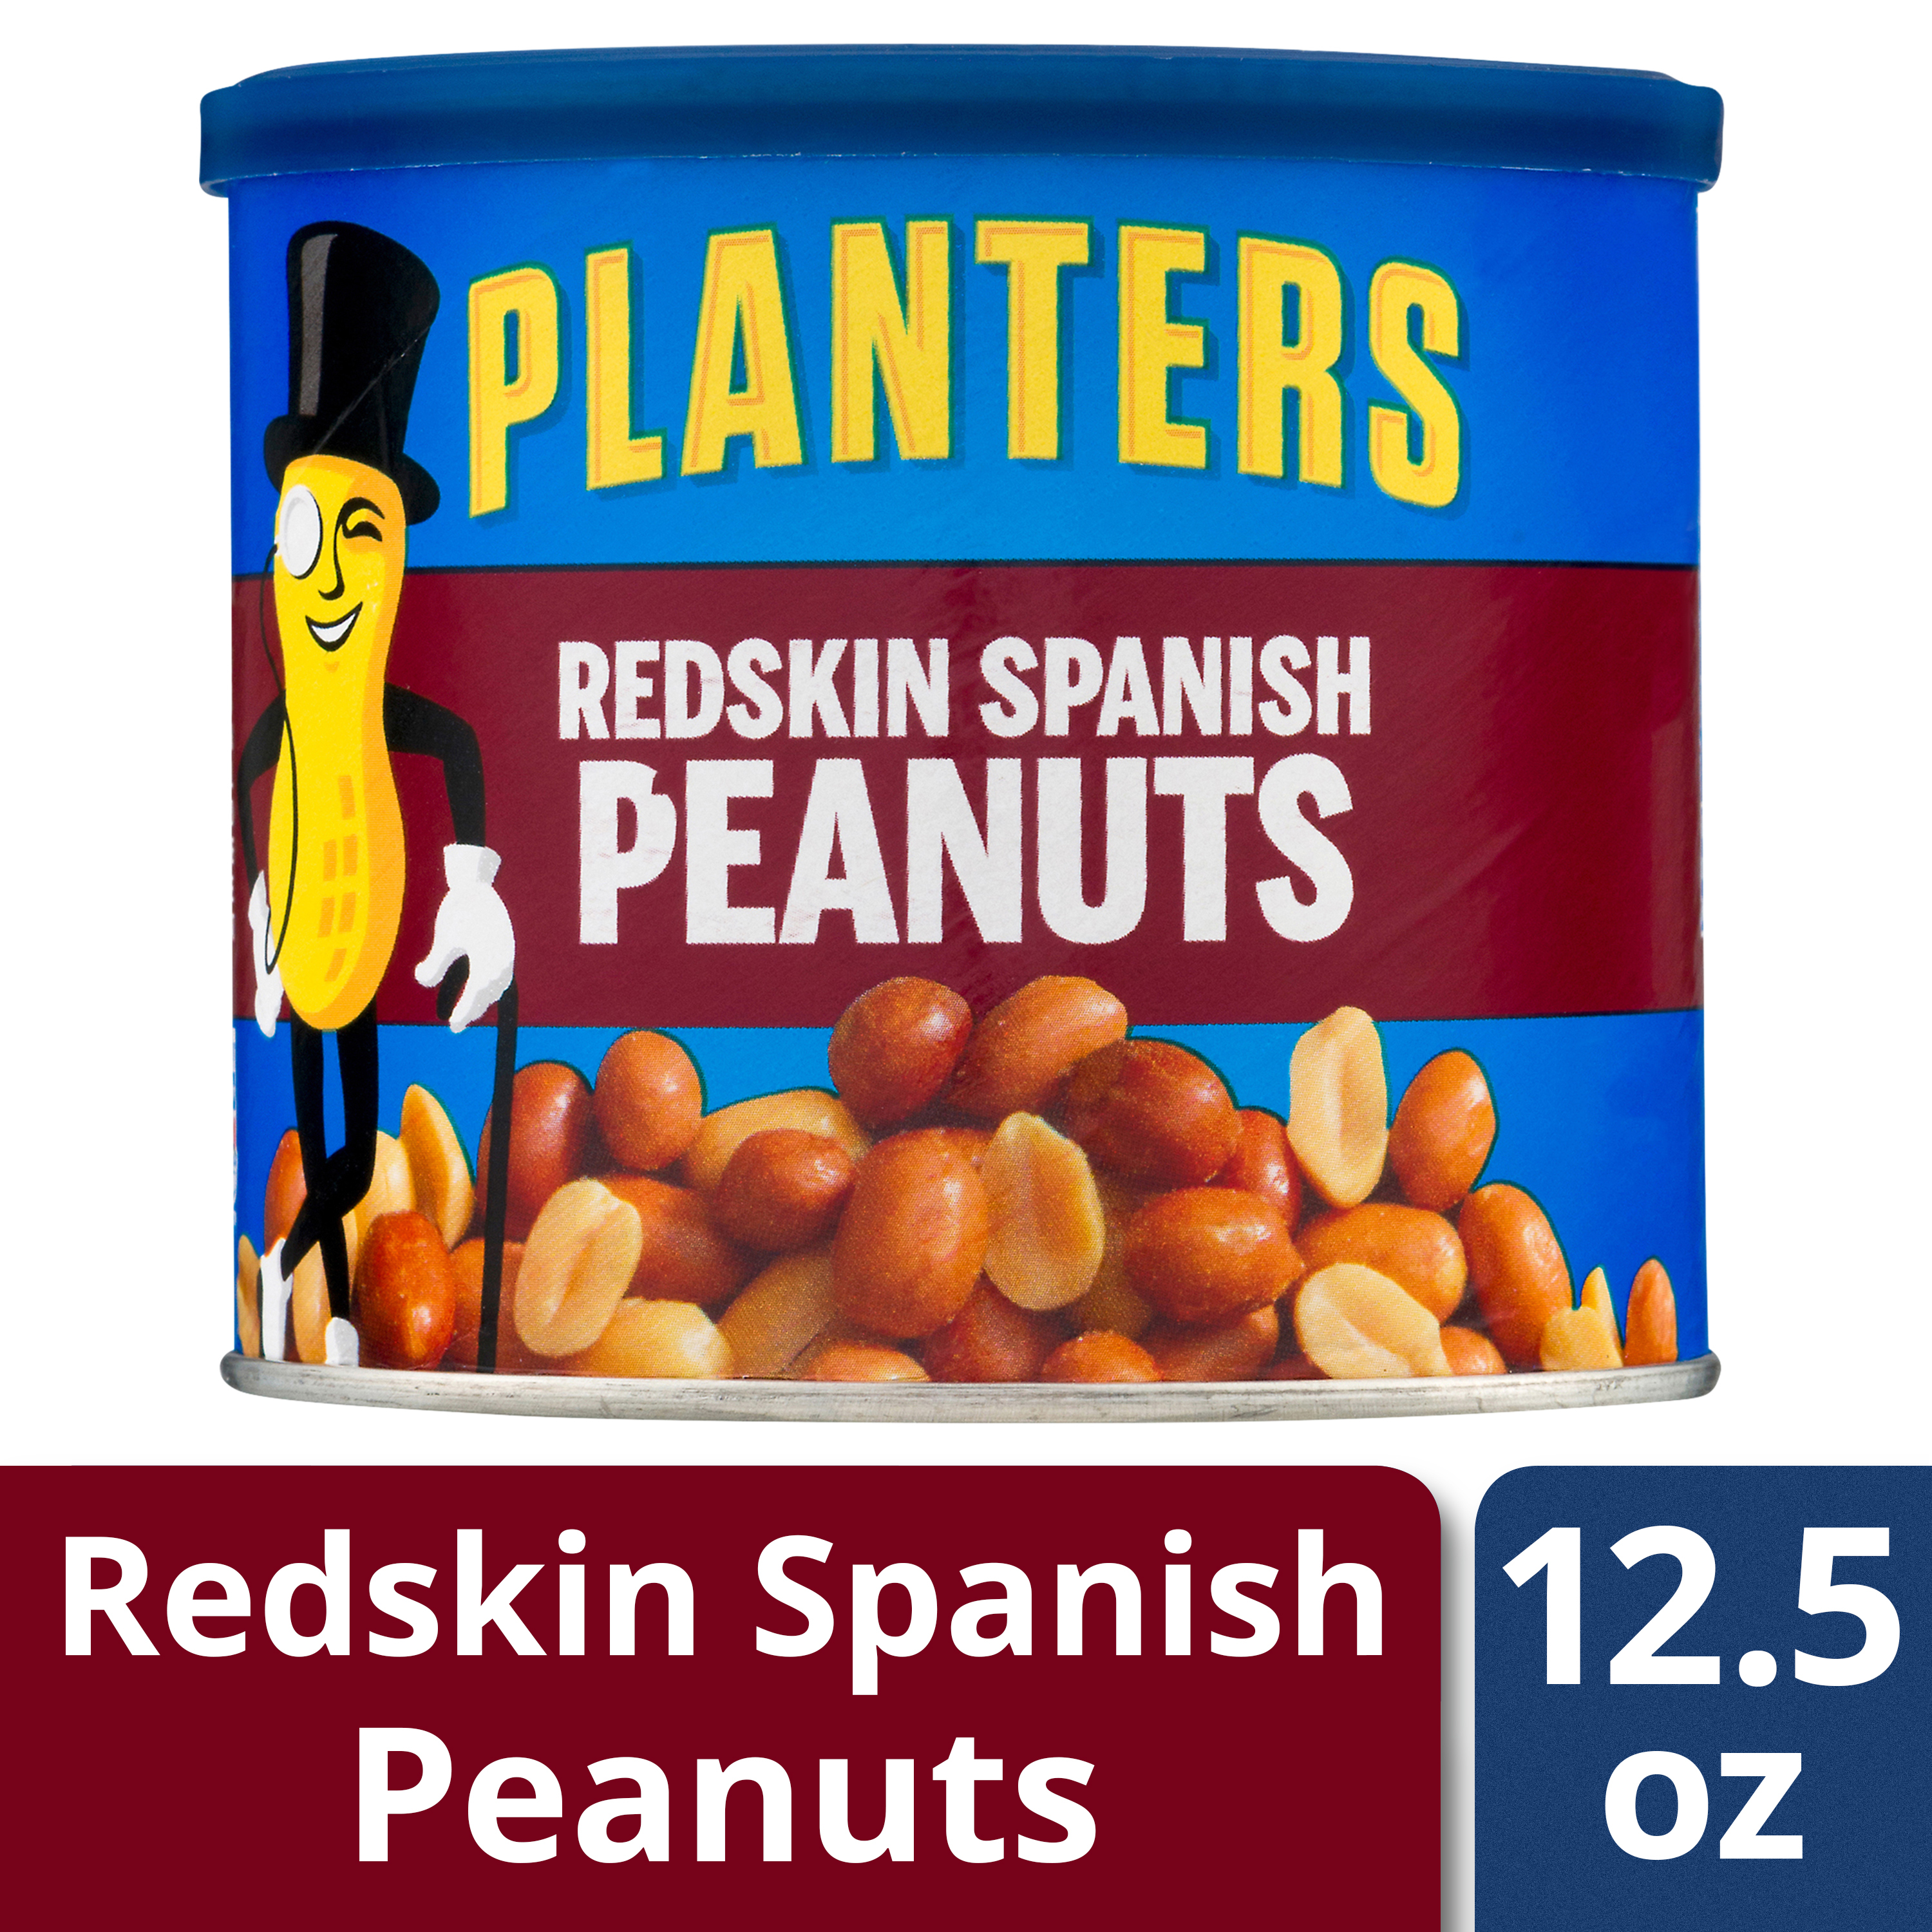 Planters Redskin Spanish Peanuts, 12.5 Oz Canister